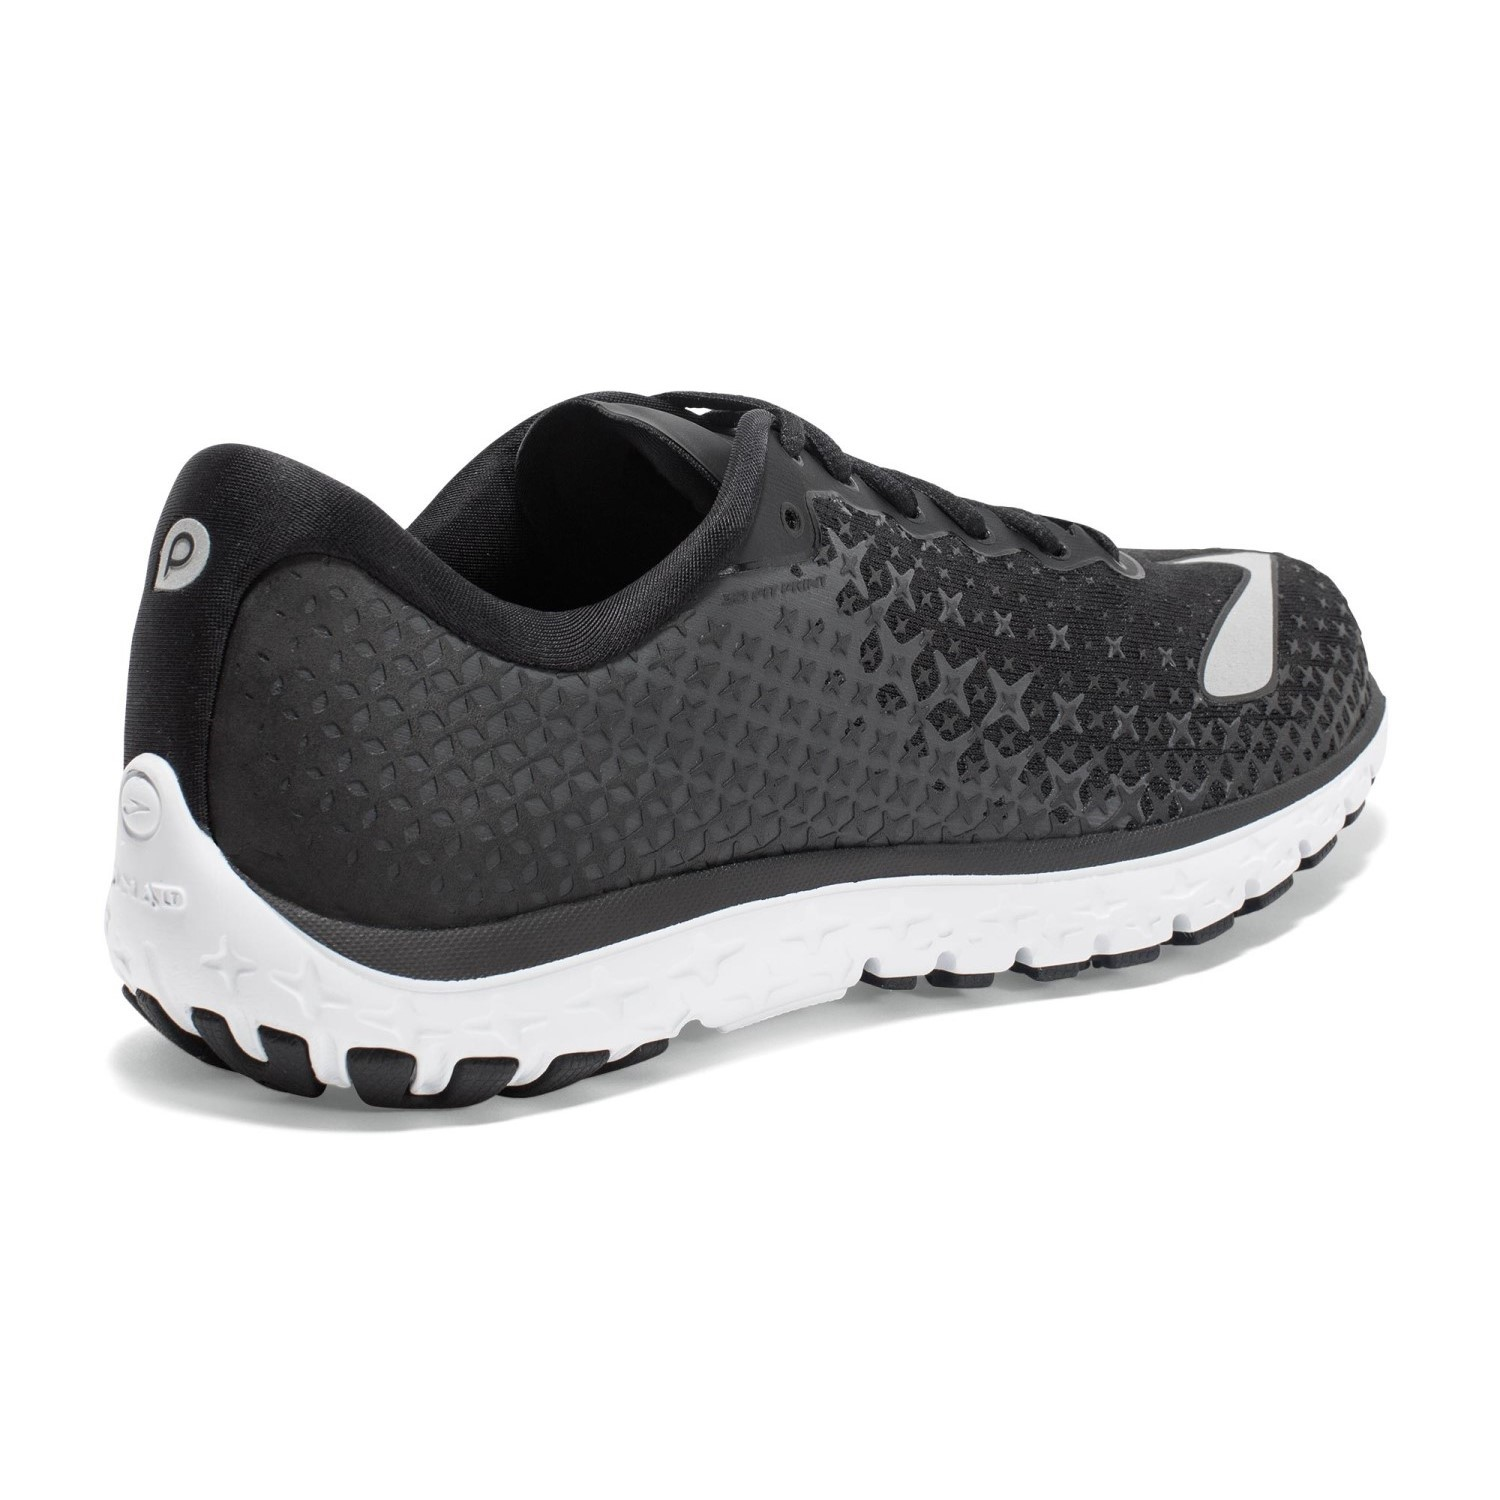 40396fca934 Brooks PureFlow 5 - Womens Running Shoes - Black Anthracite White ...